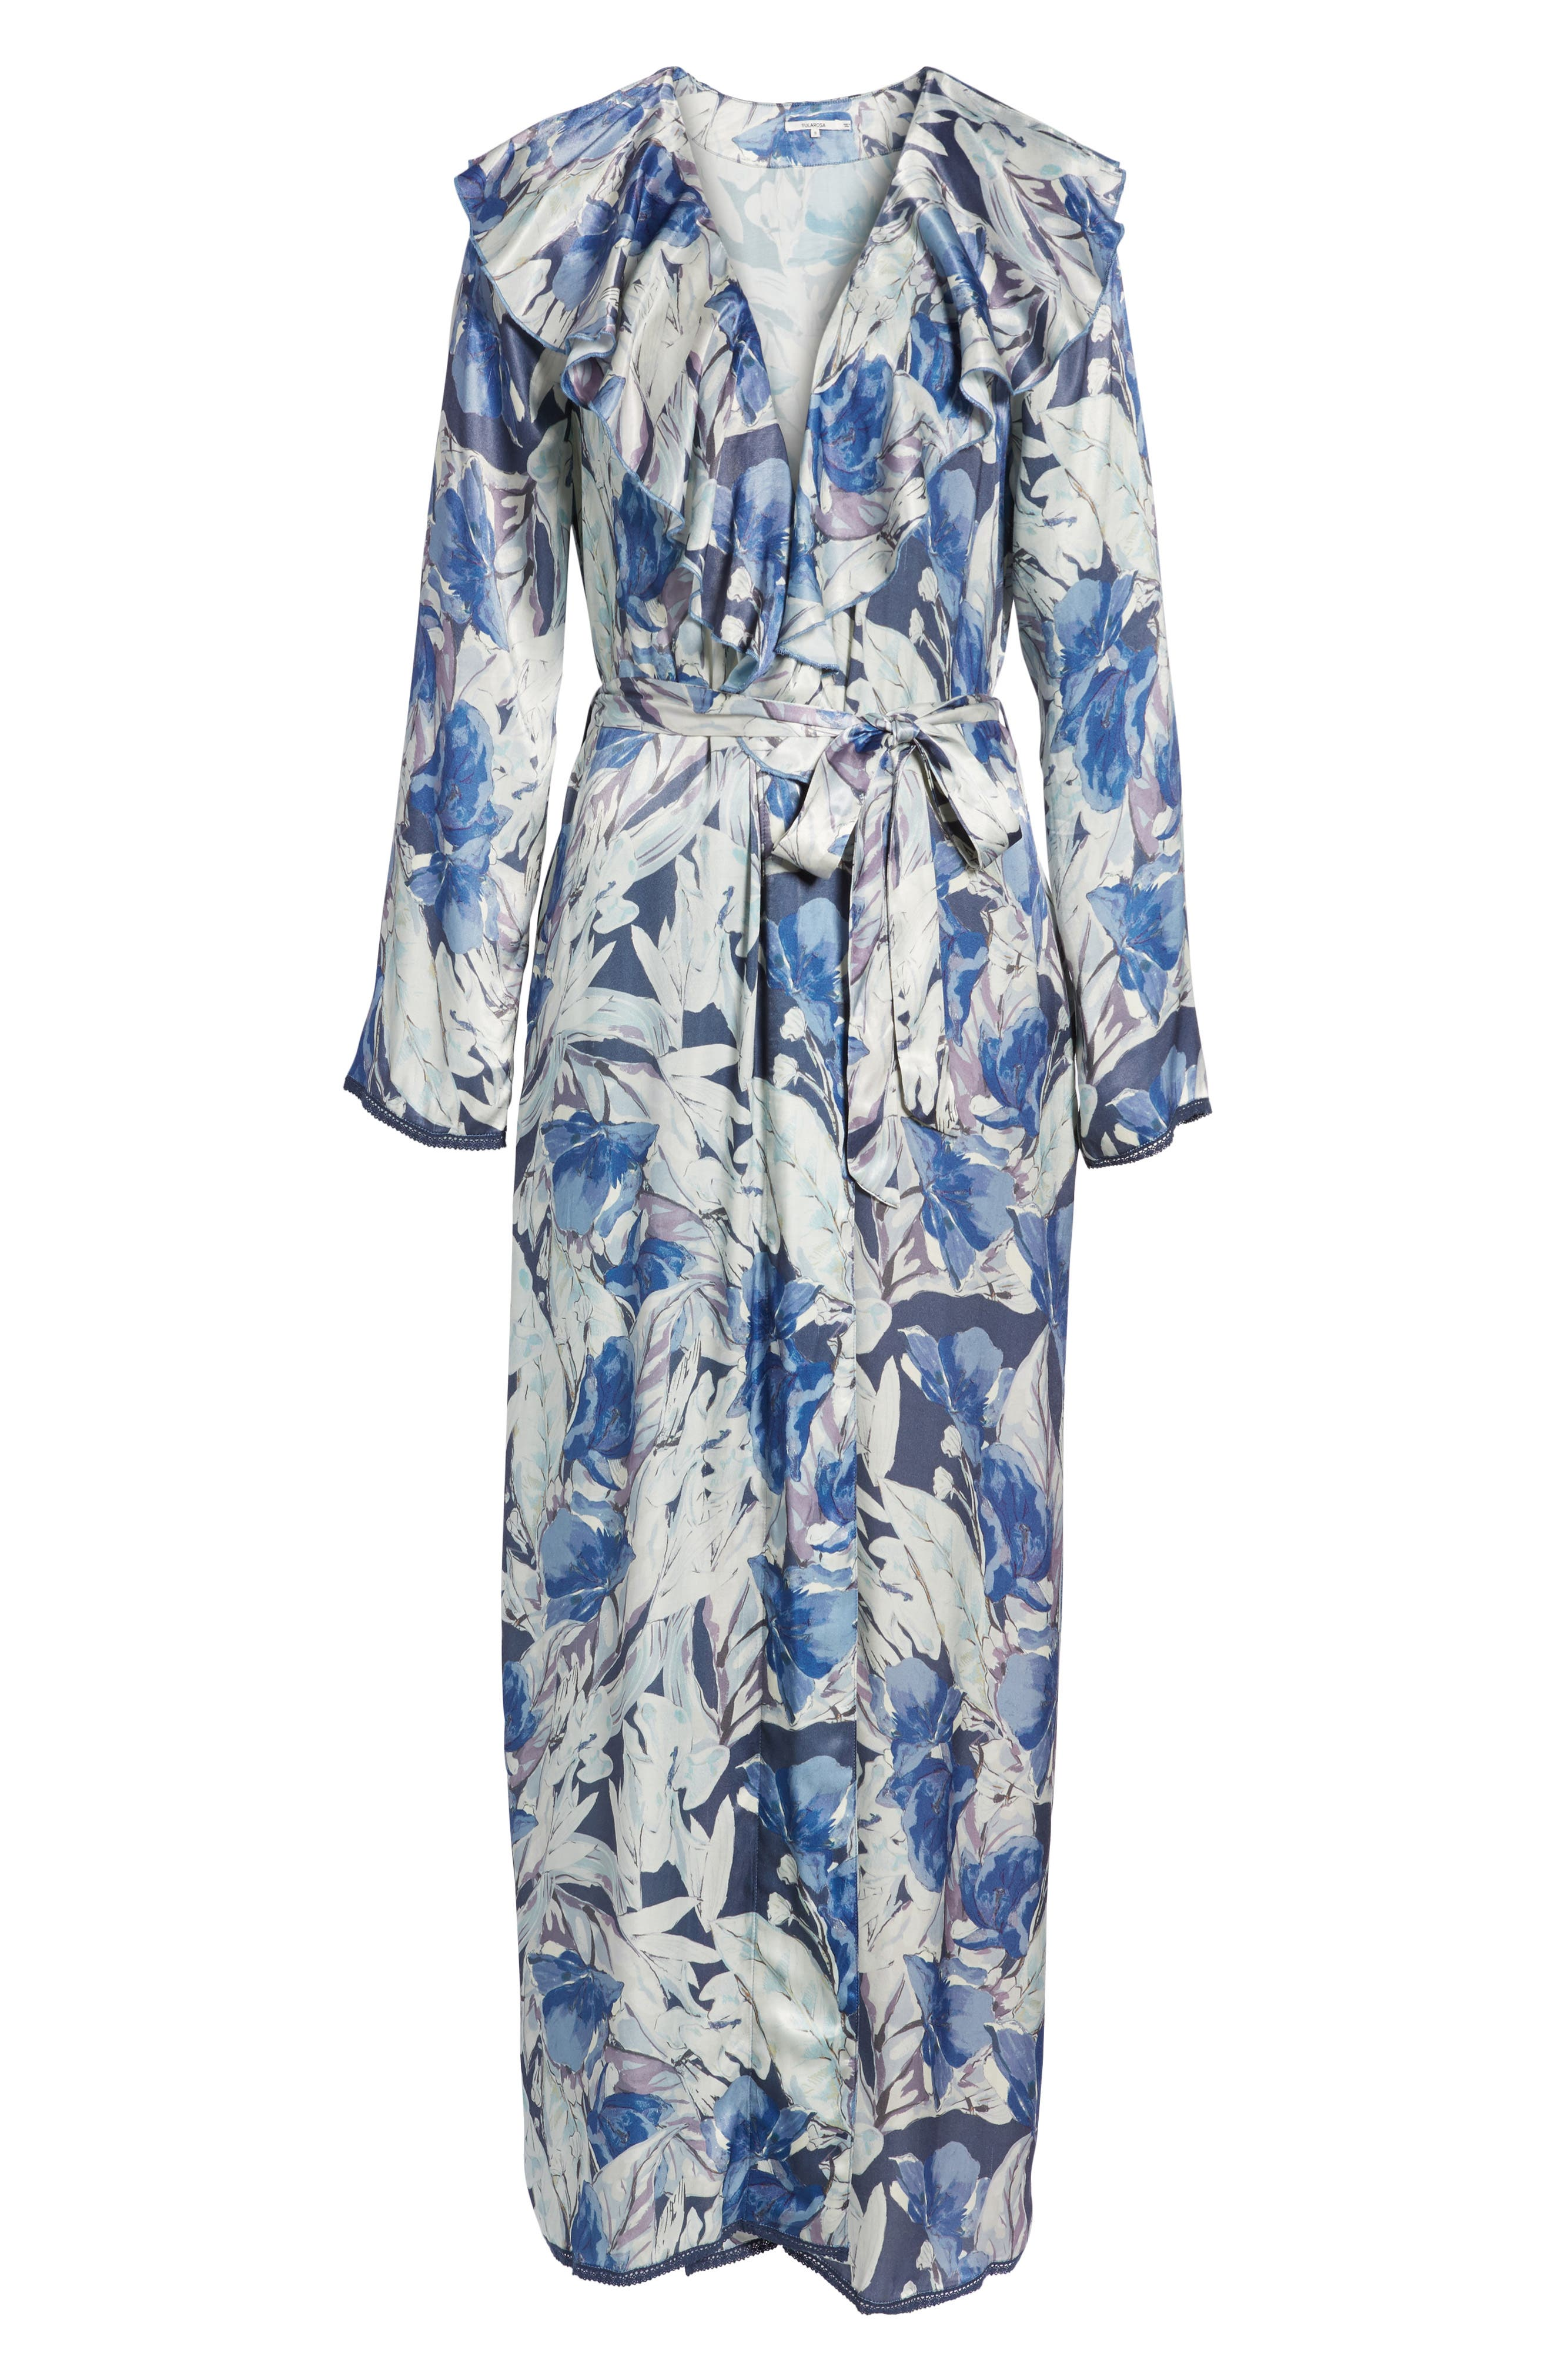 Drucilla Floral Print Duster,                             Alternate thumbnail 6, color,                             Midnight Floral